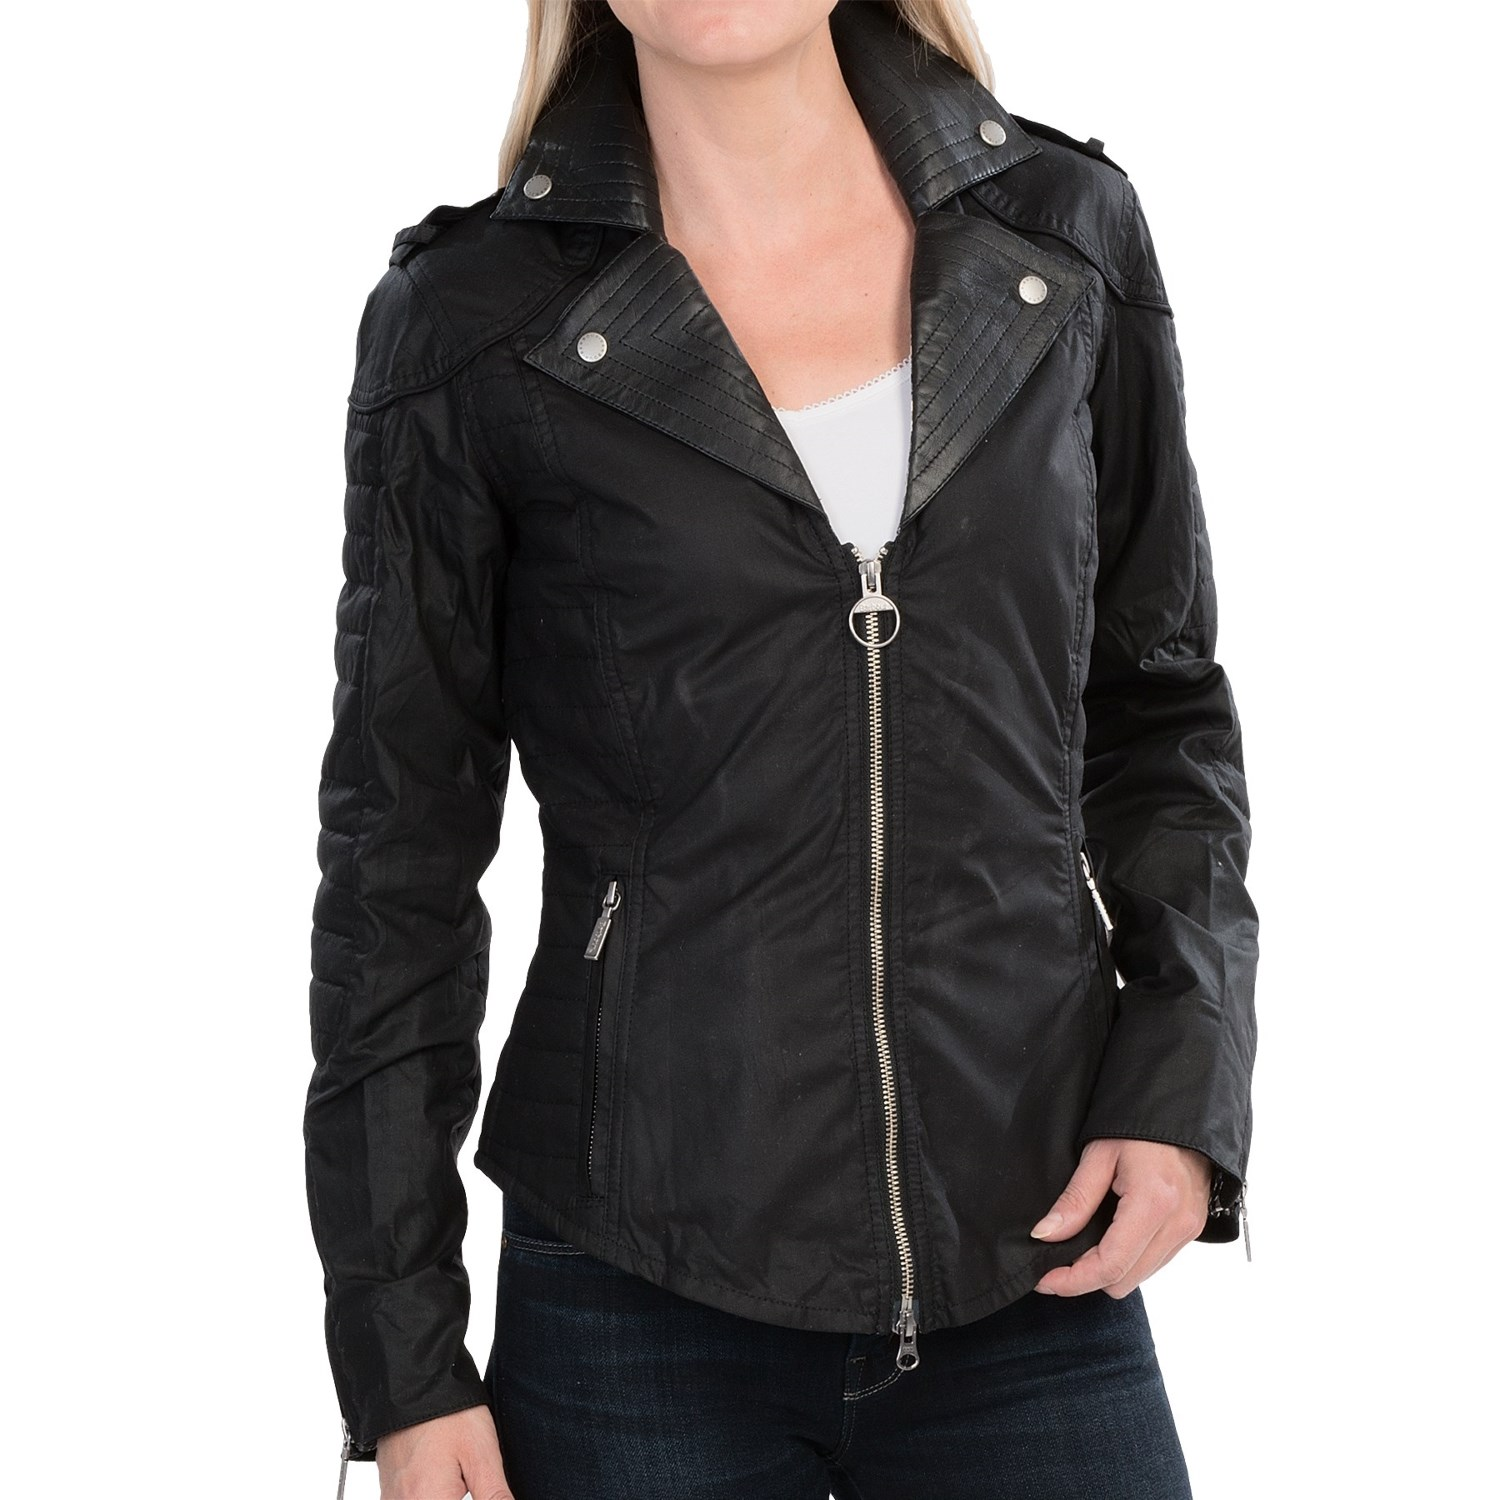 Barbour Pivot Jacket - Waxed Cotton (For Women) in Black. Click to expand